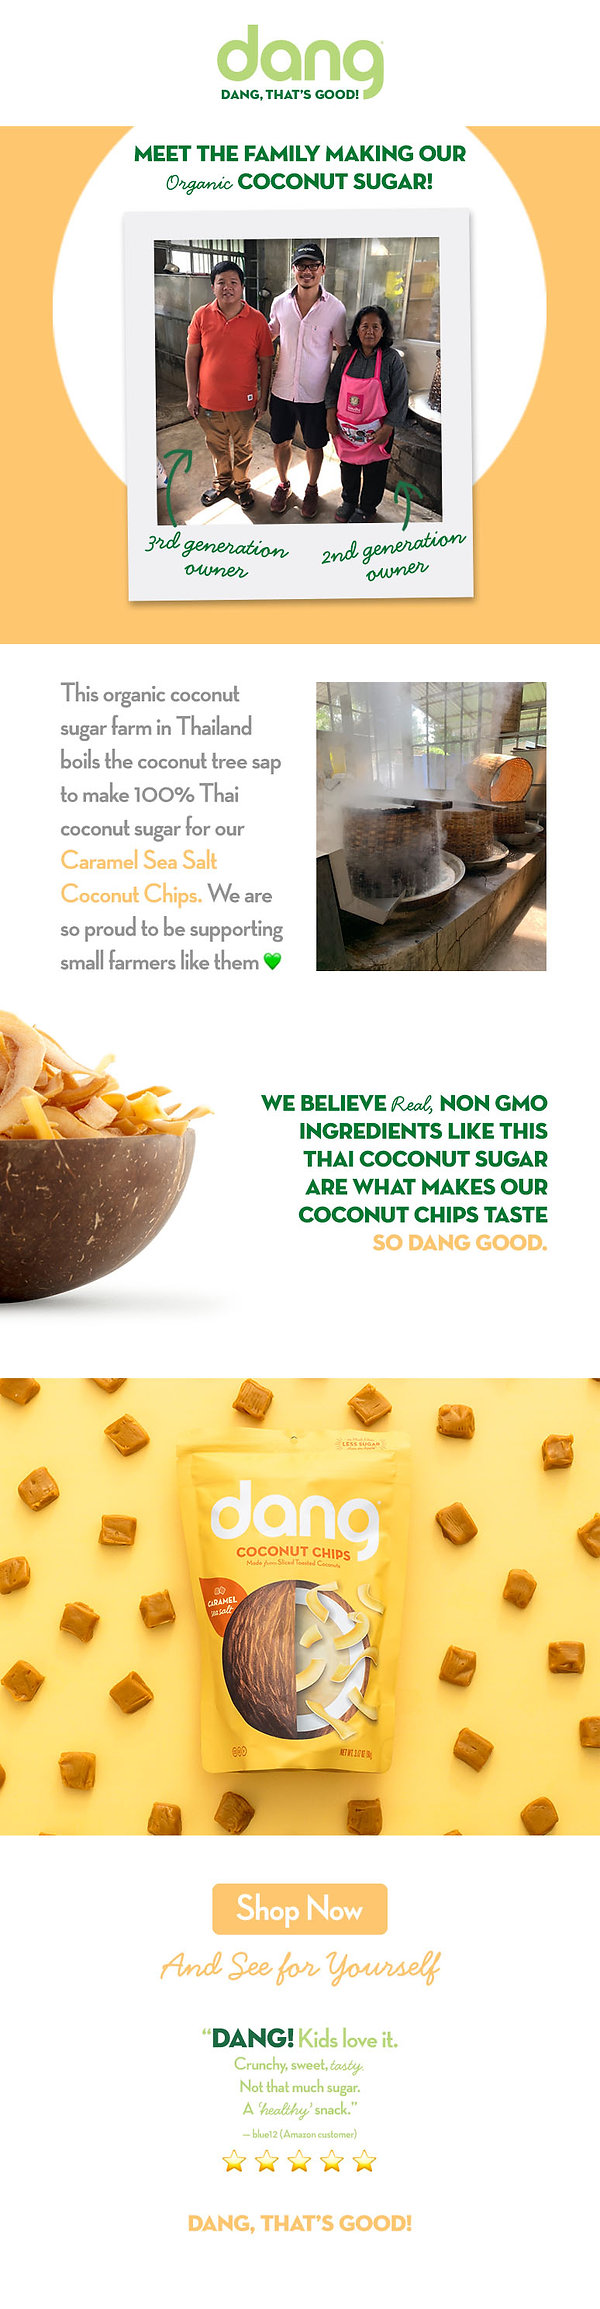 Email Campaign - Coconut Chip Support 04